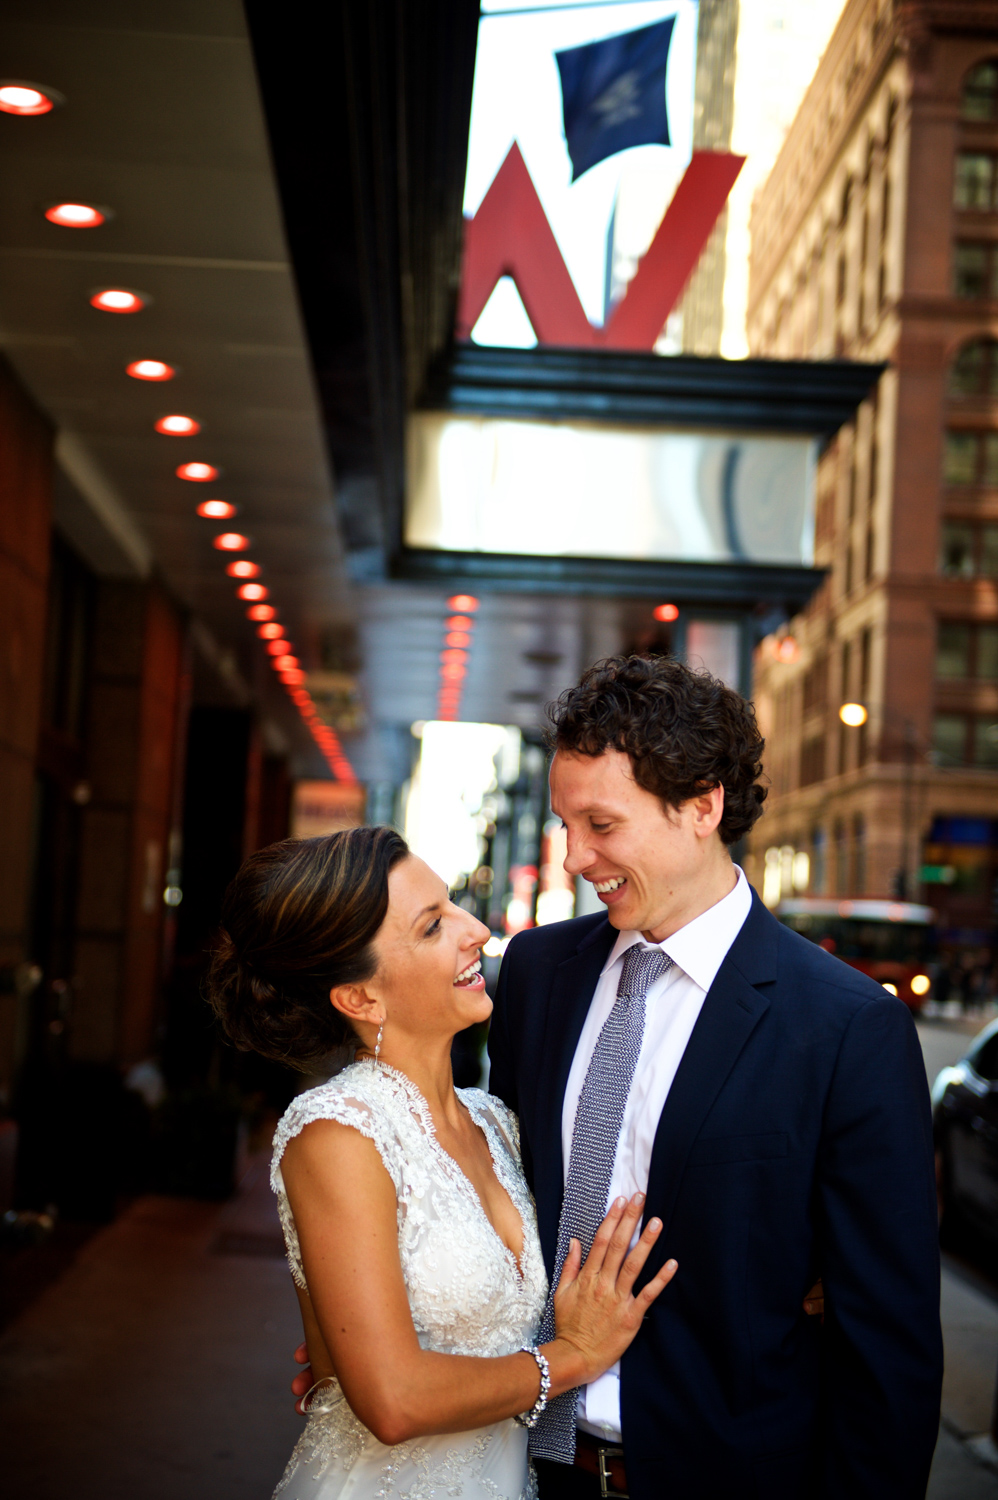 Photo of a bride and groom on their wedding in downtown Chicago near the W Chicago City Center.